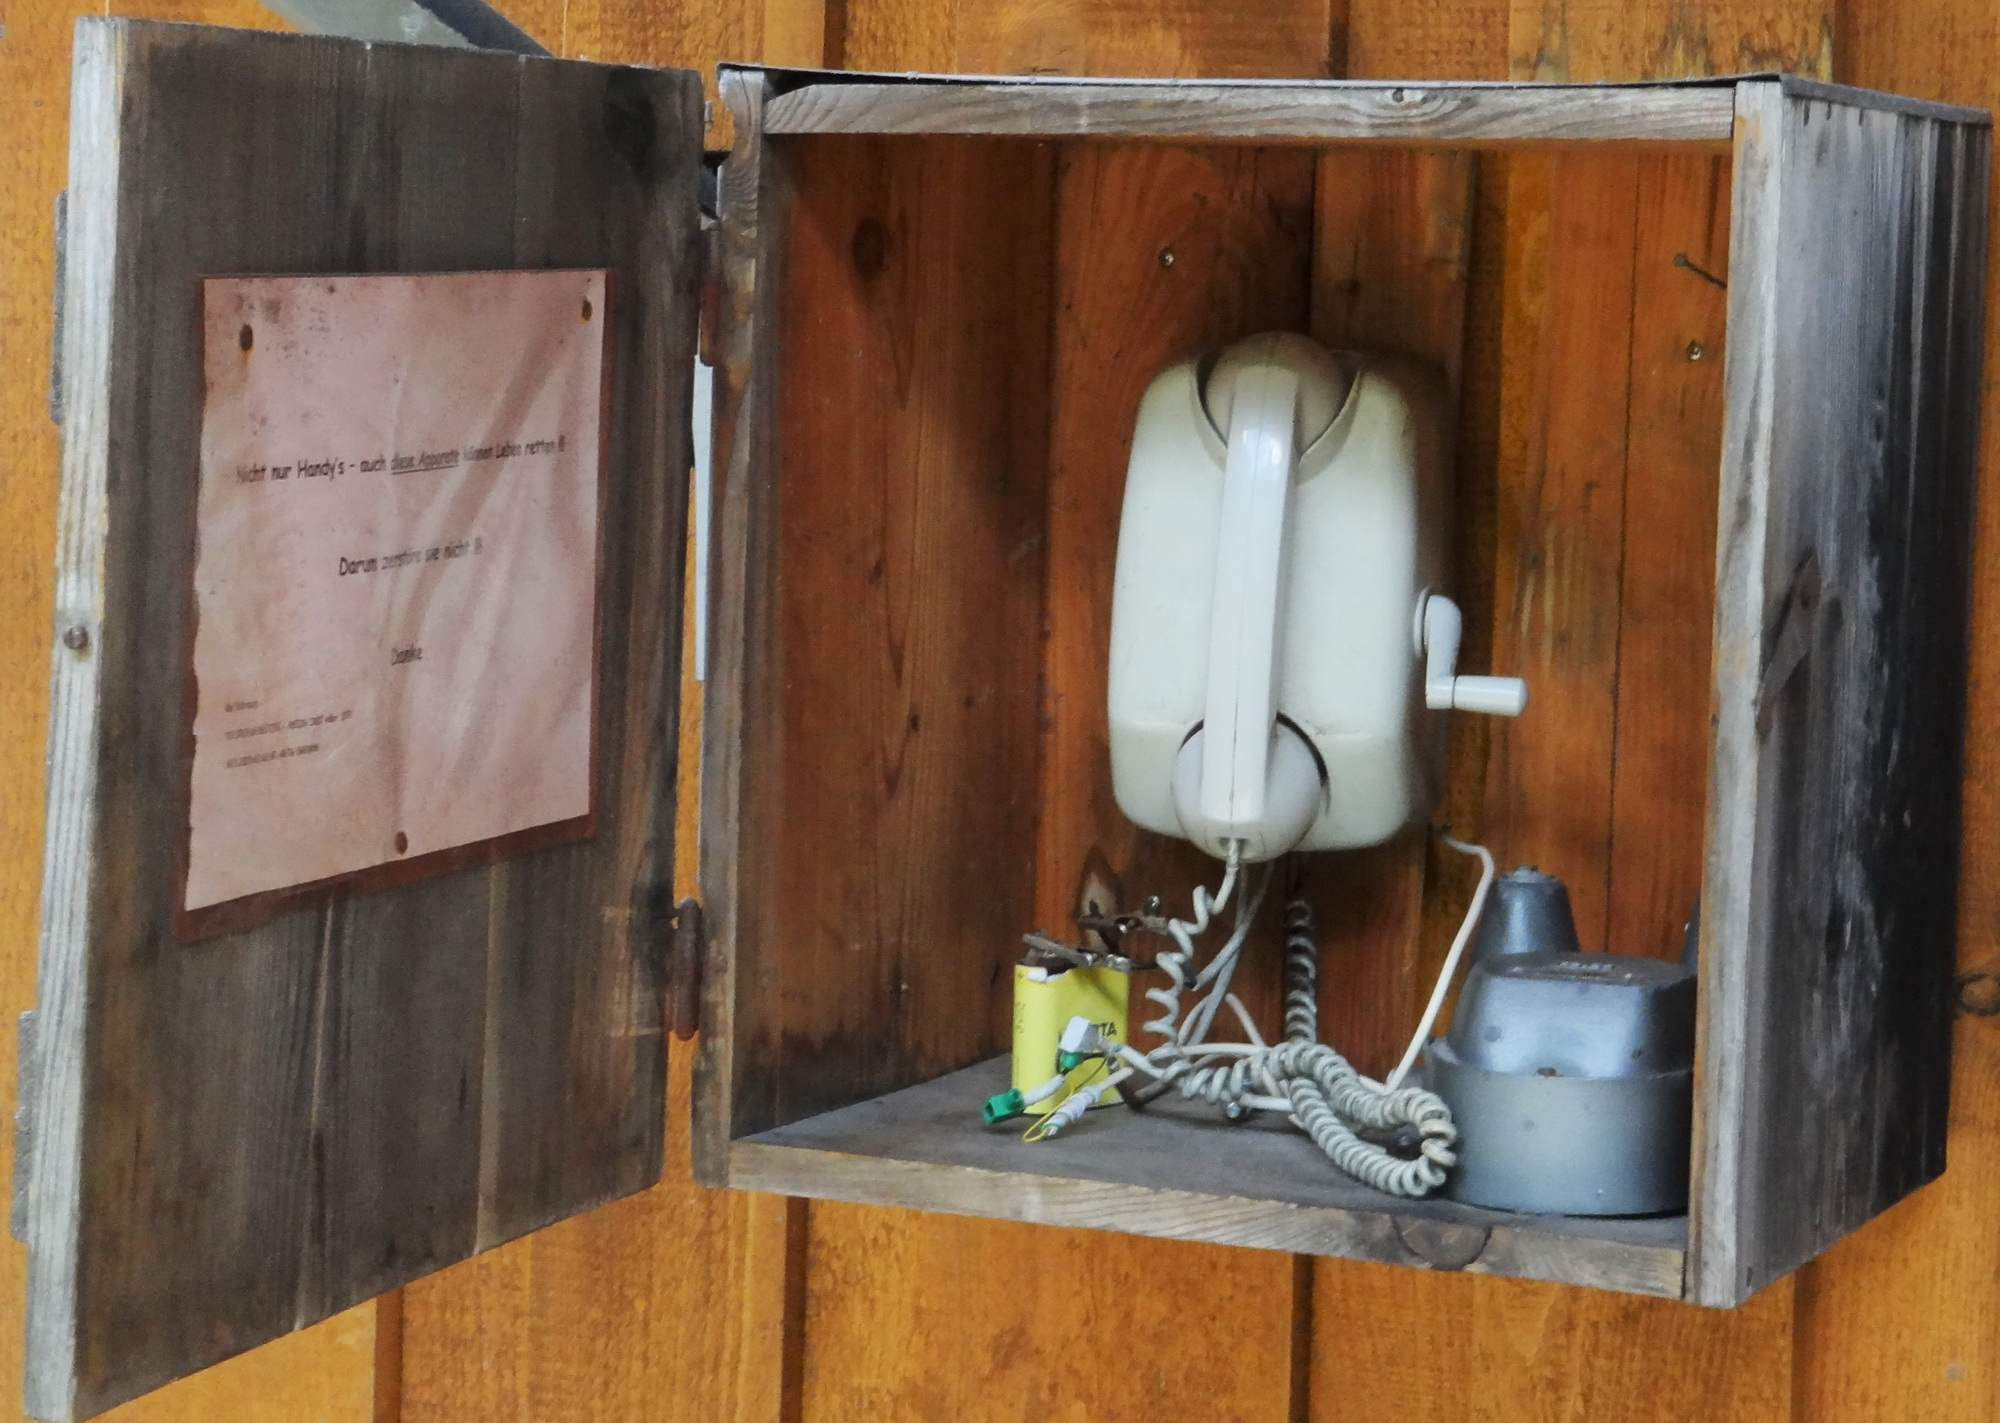 Sulzenau hut telephone